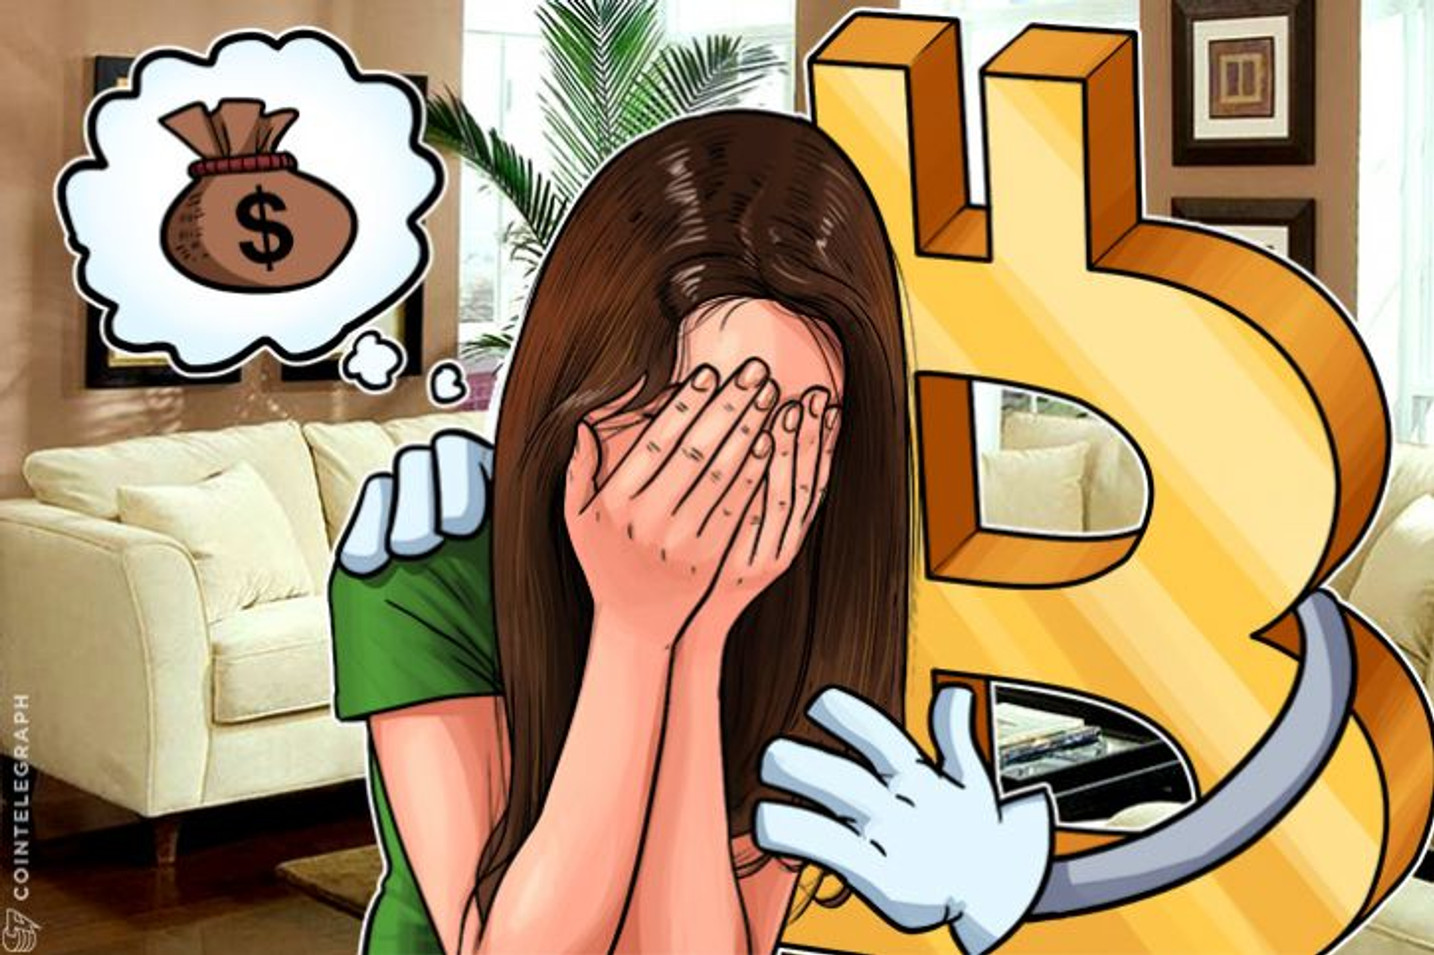 Tell Us Why You Bought Bitcoin Or Face Account Closure: US Bank To Customer